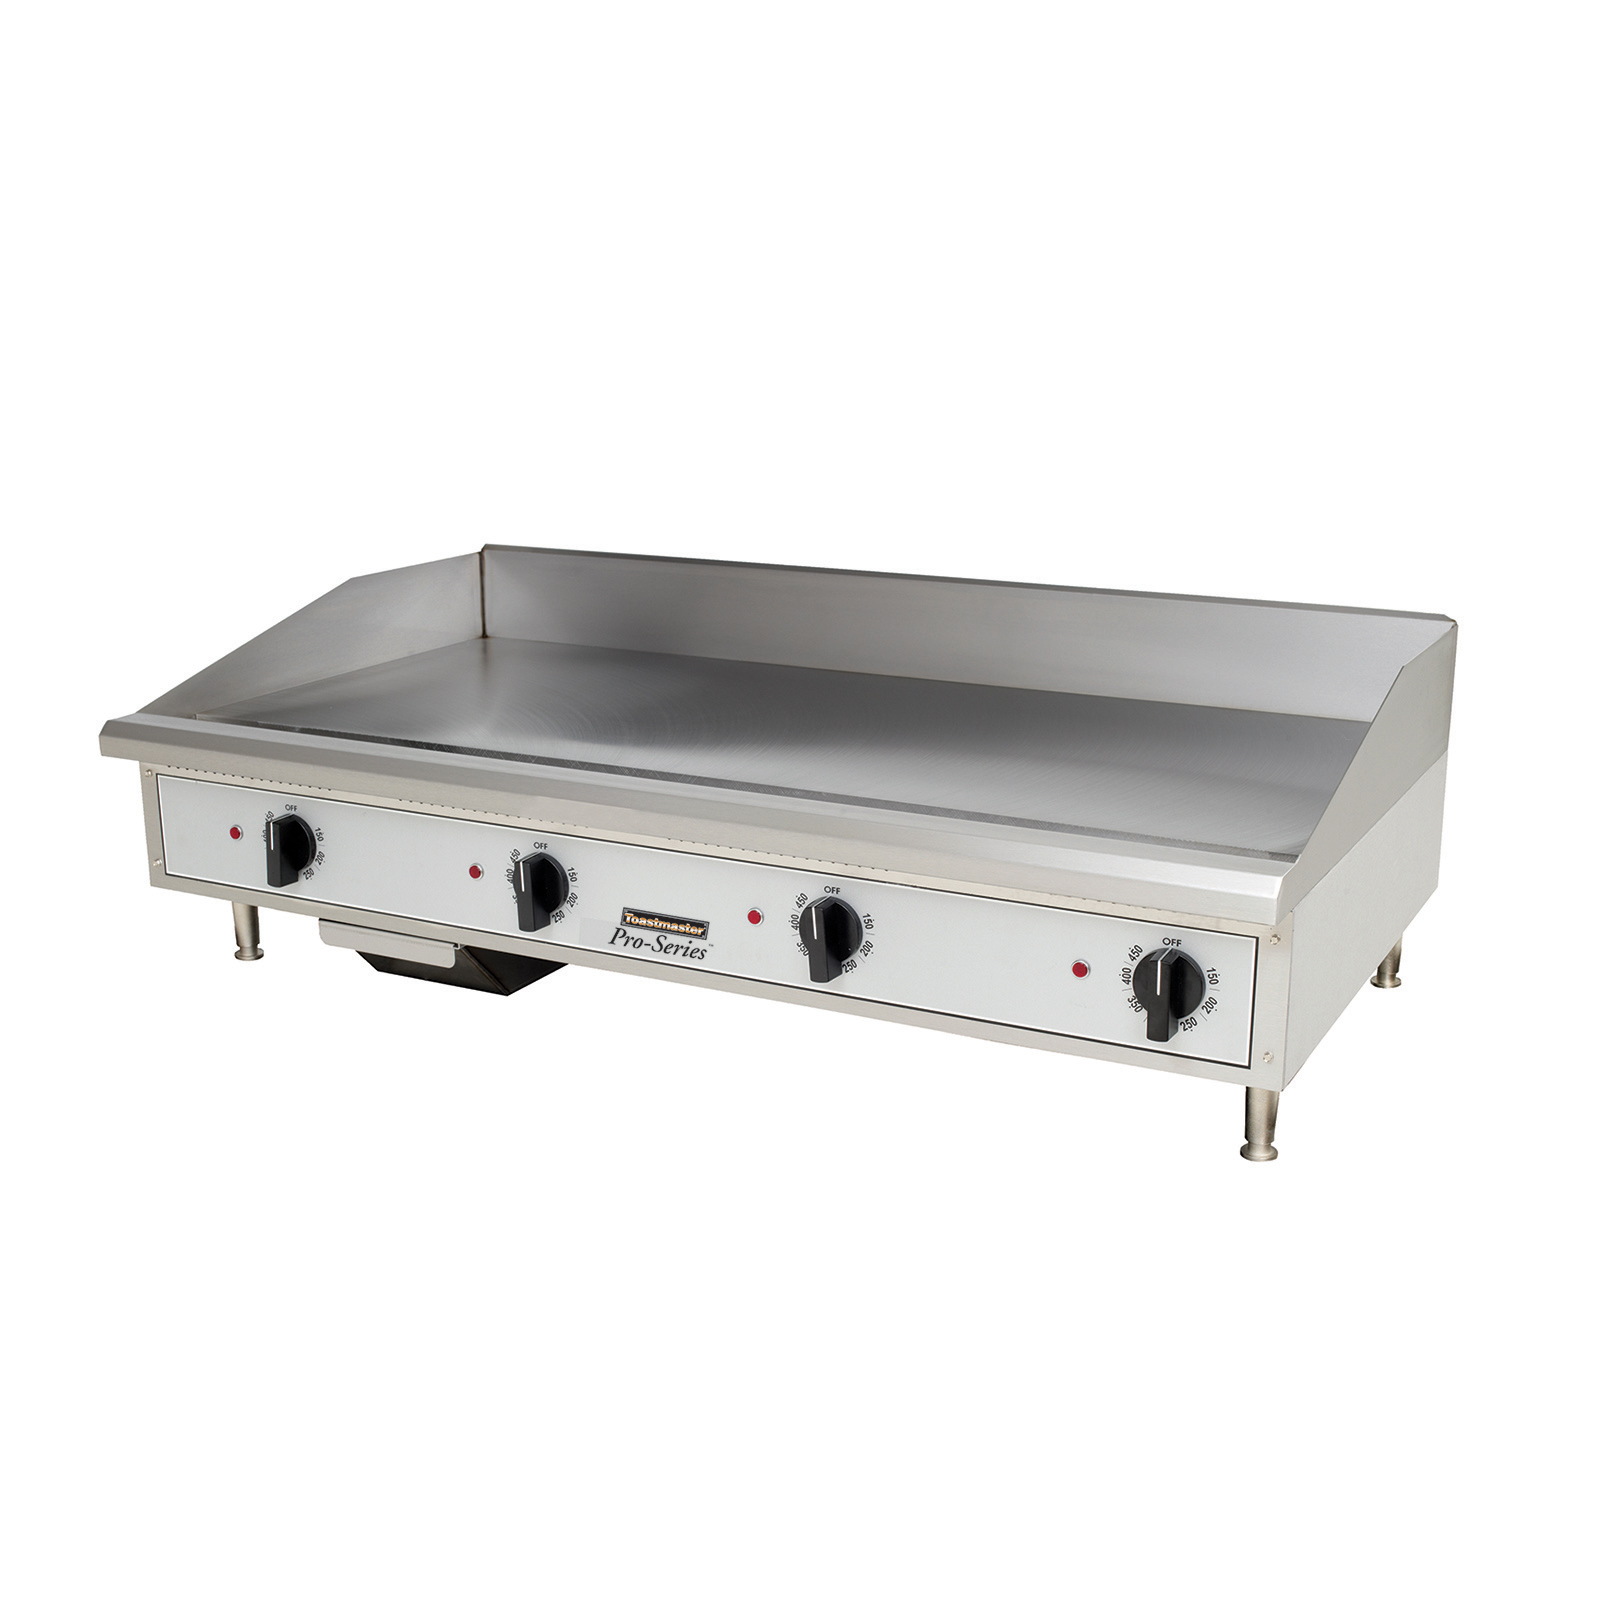 Toastmaster TMGE48 griddle, electric, countertop